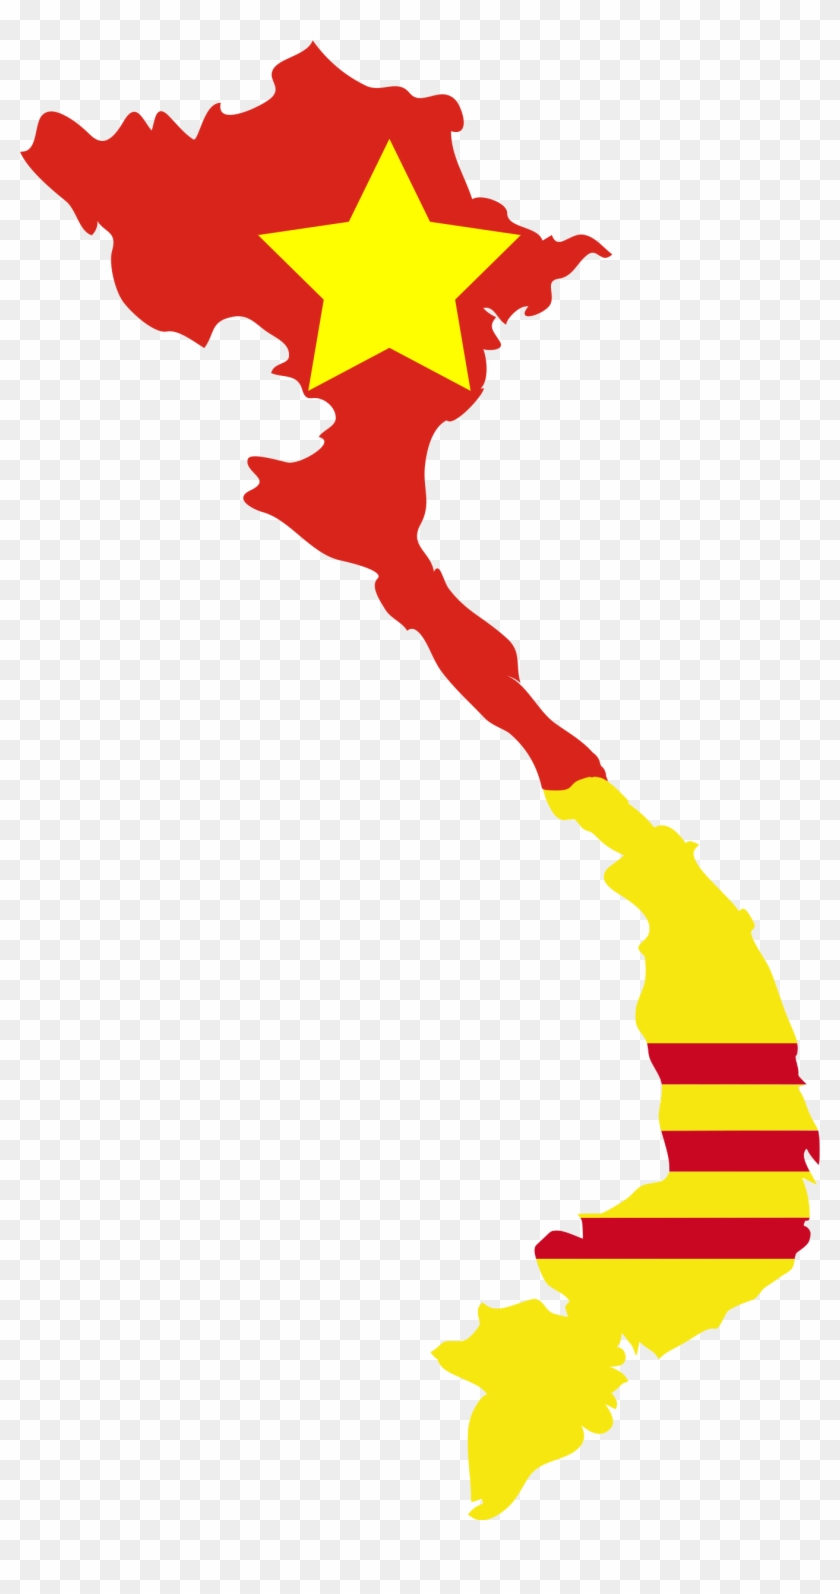 Thailand Flag Clipart Transparent Background Vietnam Map Hd Png Download 1347x2493 829534 Pngfind